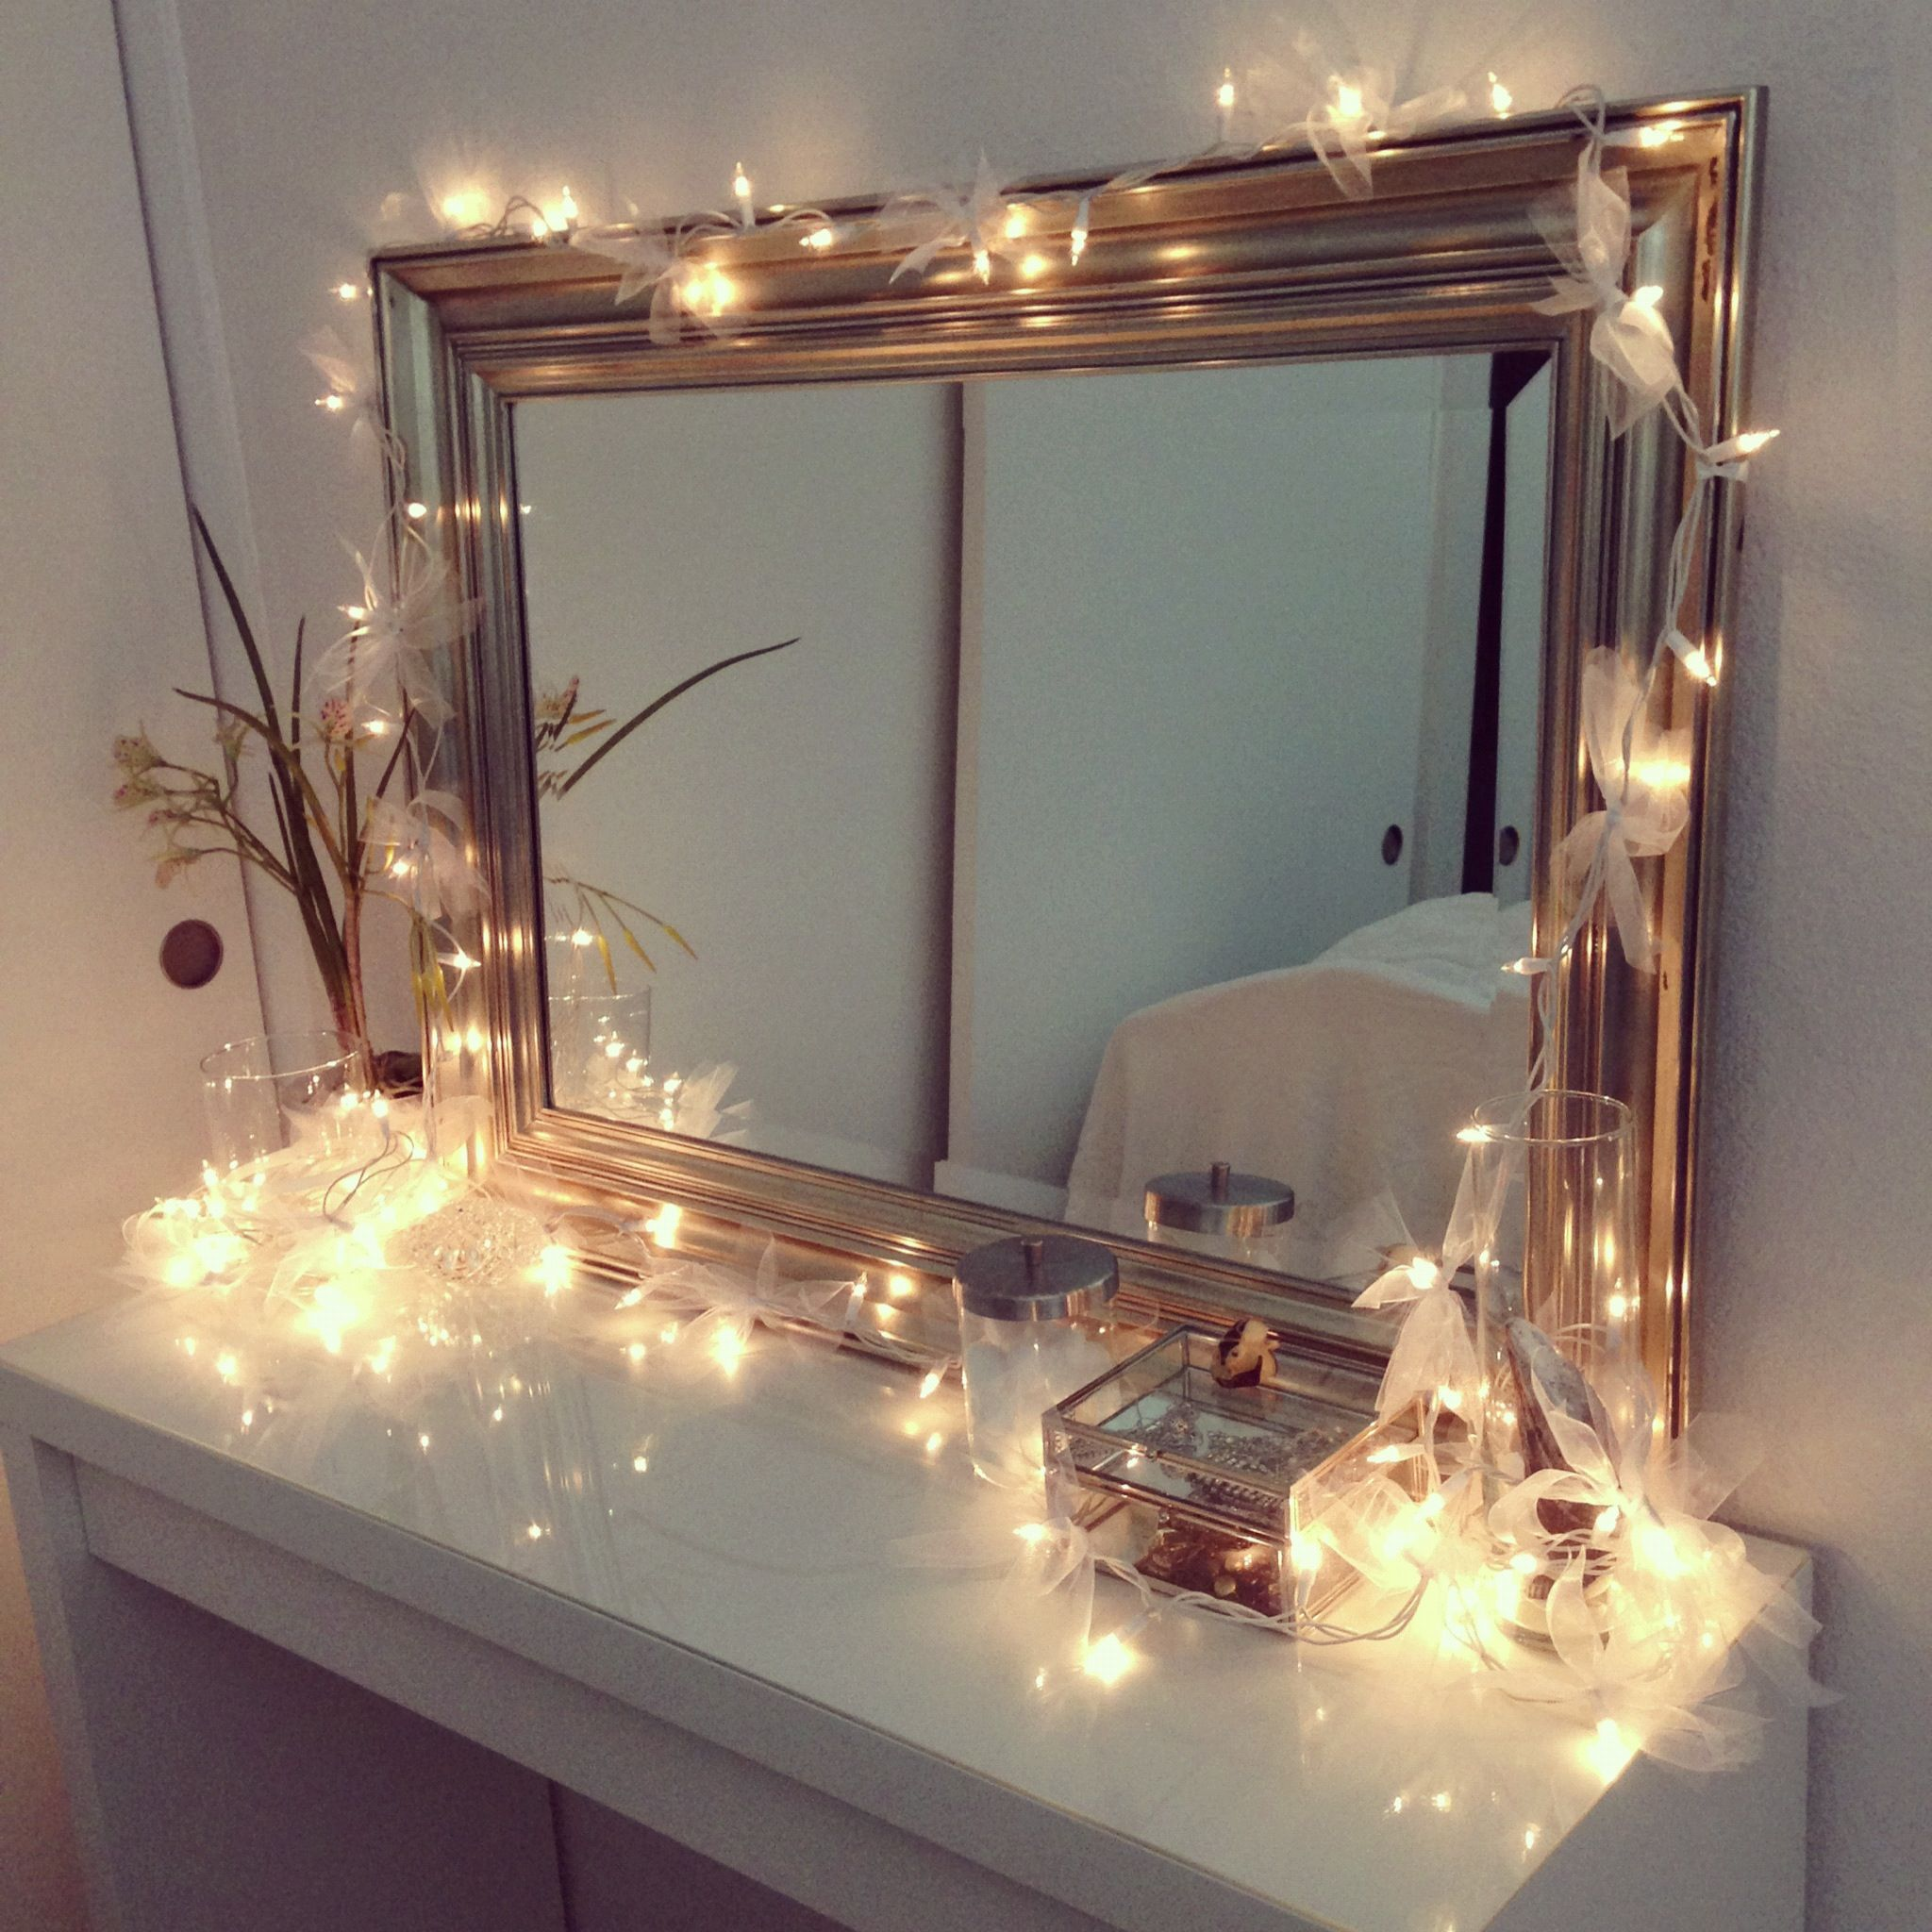 Indoor christmas lights for bedroom - Ikea Vanity Decorated With Christmas Lights And Sheer Ribbons Mirror From Christmas Bedroom Decorationschristmas Lights Bedroomindoor